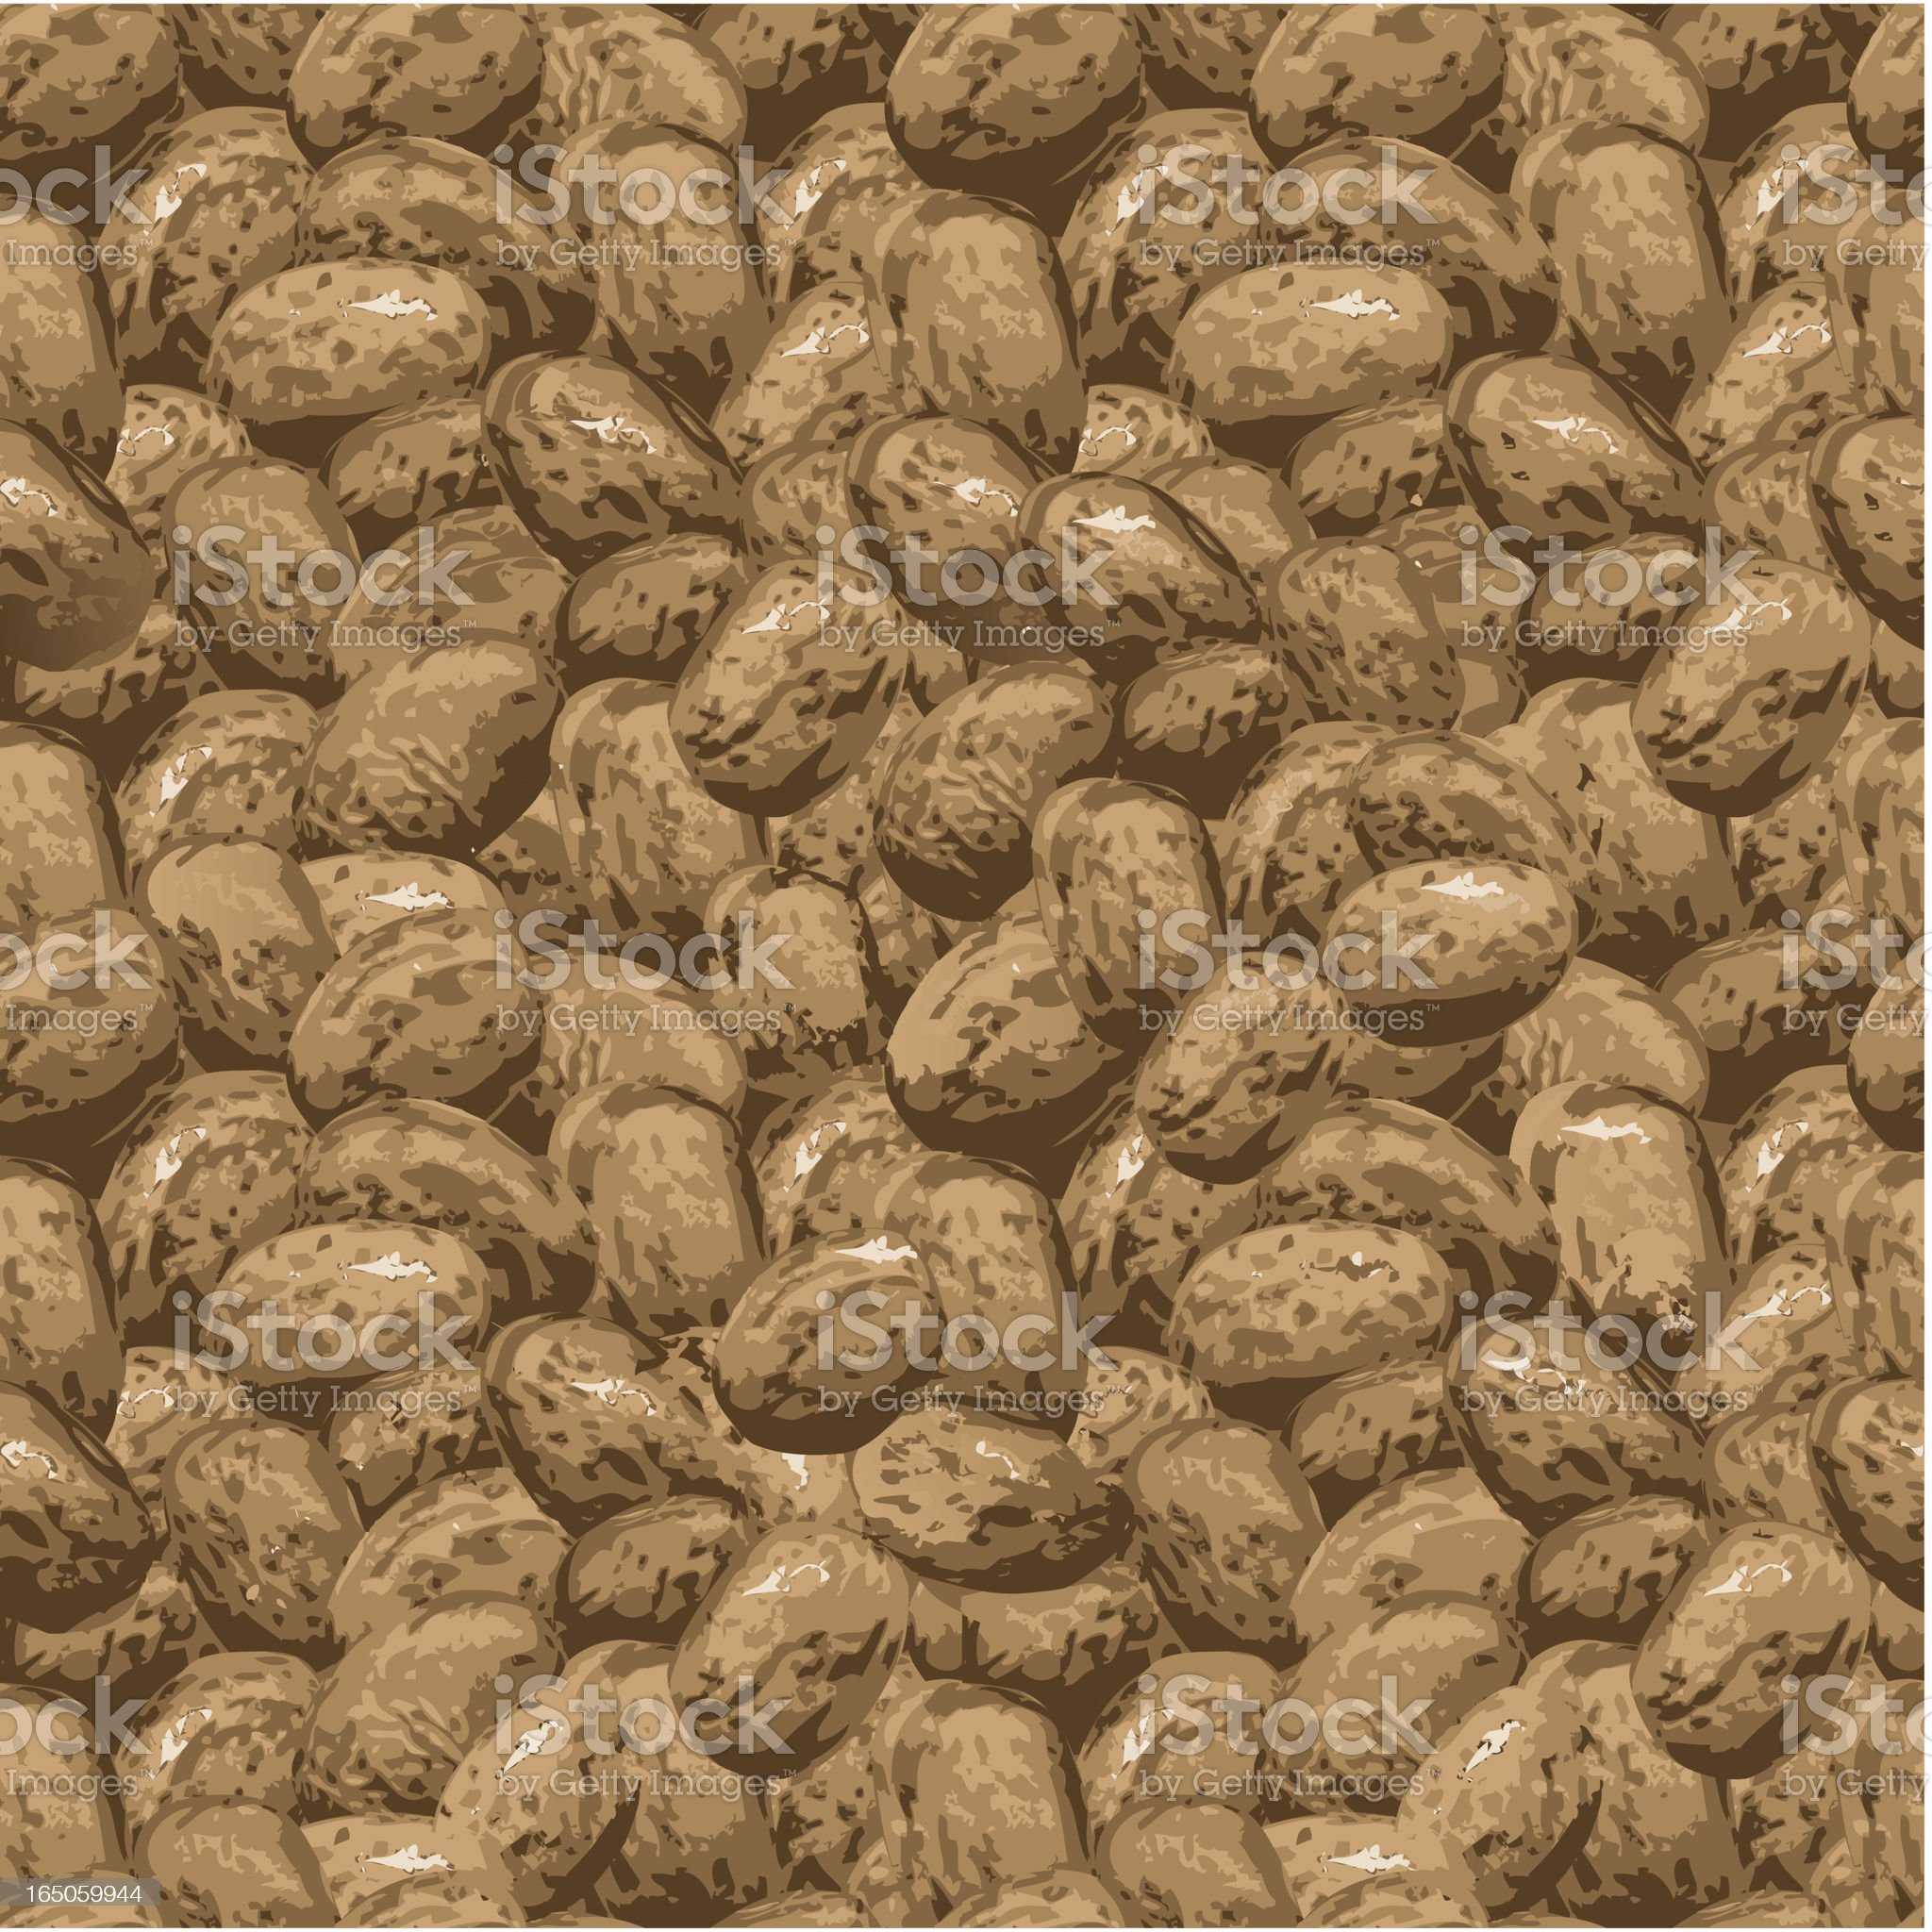 Endless Repeating Pinto Beans royalty-free stock vector art